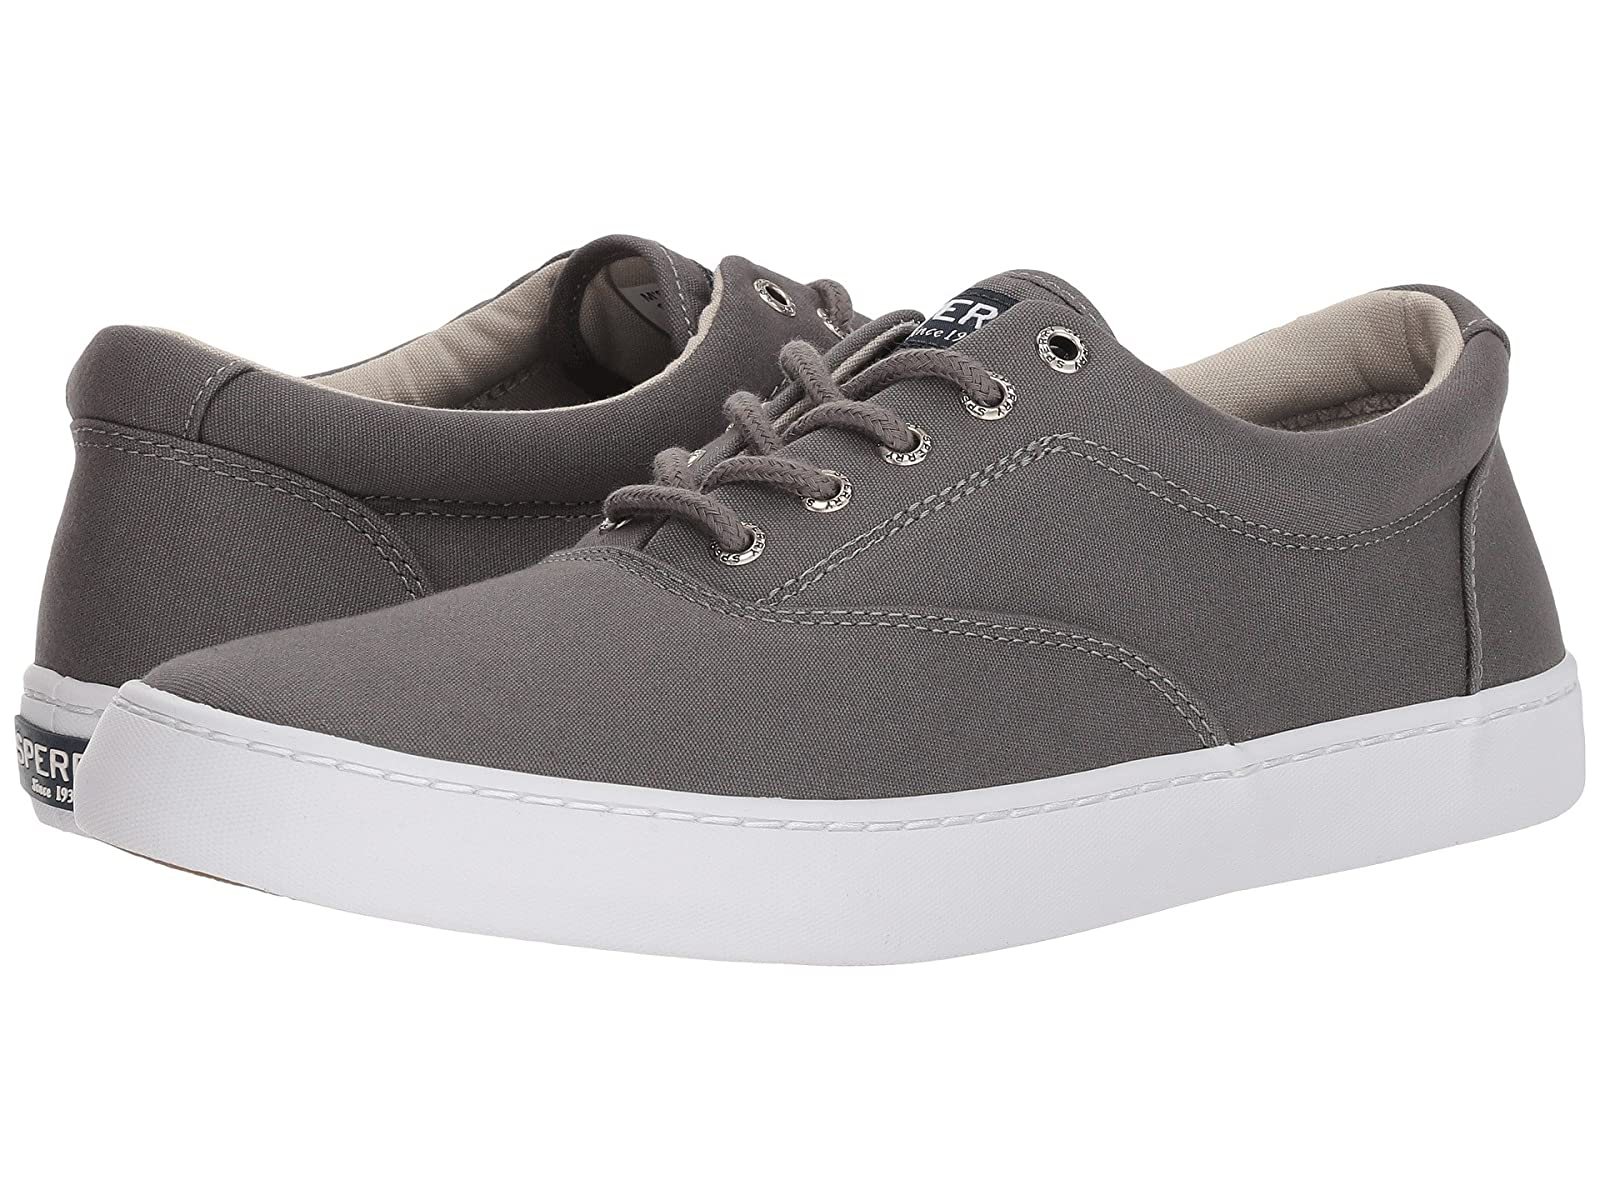 Sperry Cutter CVOCheap and distinctive eye-catching shoes